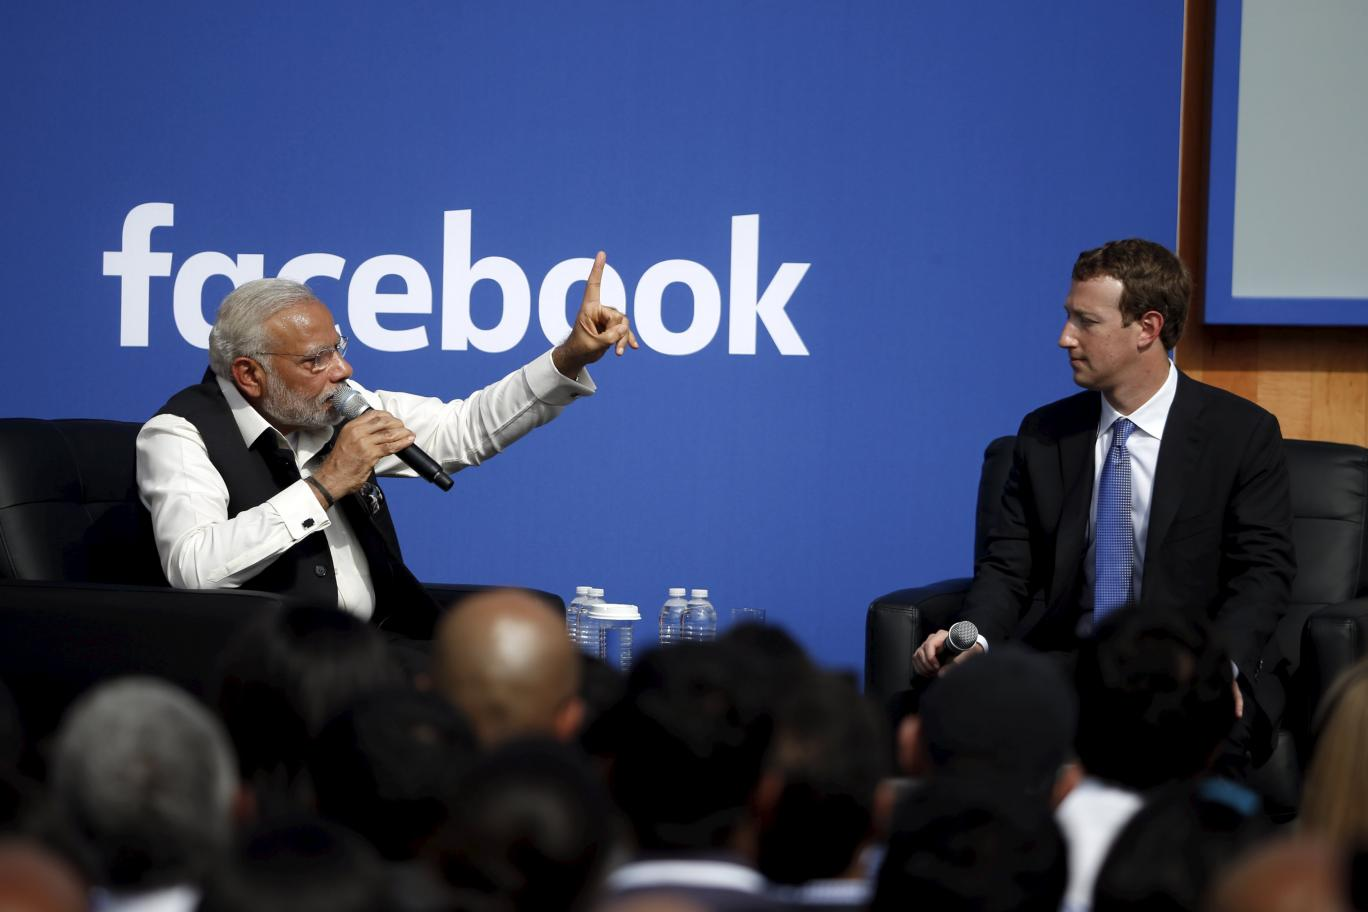 Earlier this year, Indian Prime Minister Narendra Modi (Left) visited the Facebook headquarters in Menlo Park, California, United States for a TownHall Q&A. Image Credit: Independent